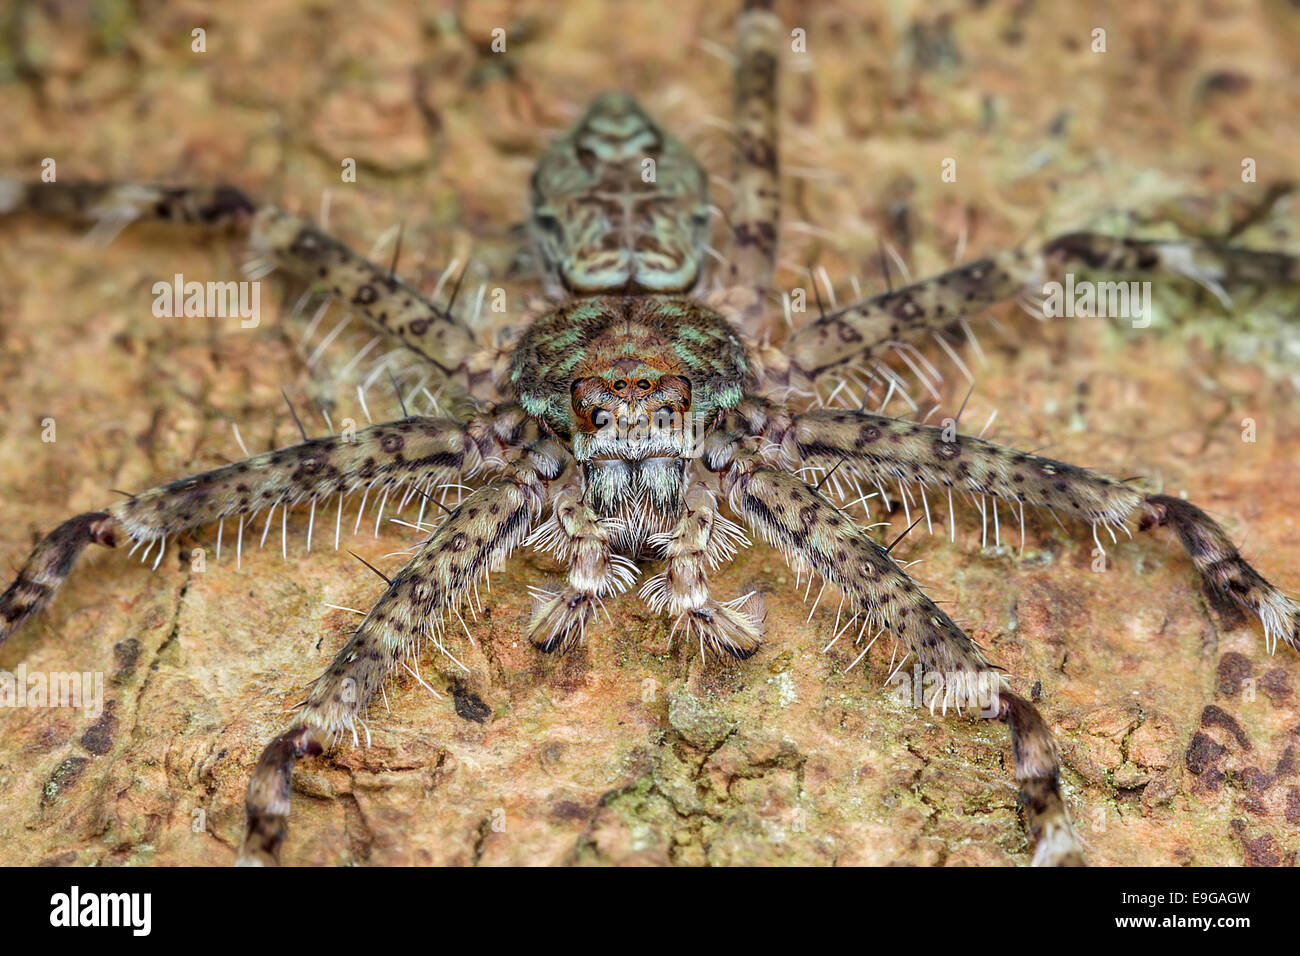 Huntsman spider (Heteropoda sp.) on tree trunk in tropical rainforest of Singapore - Stock Image